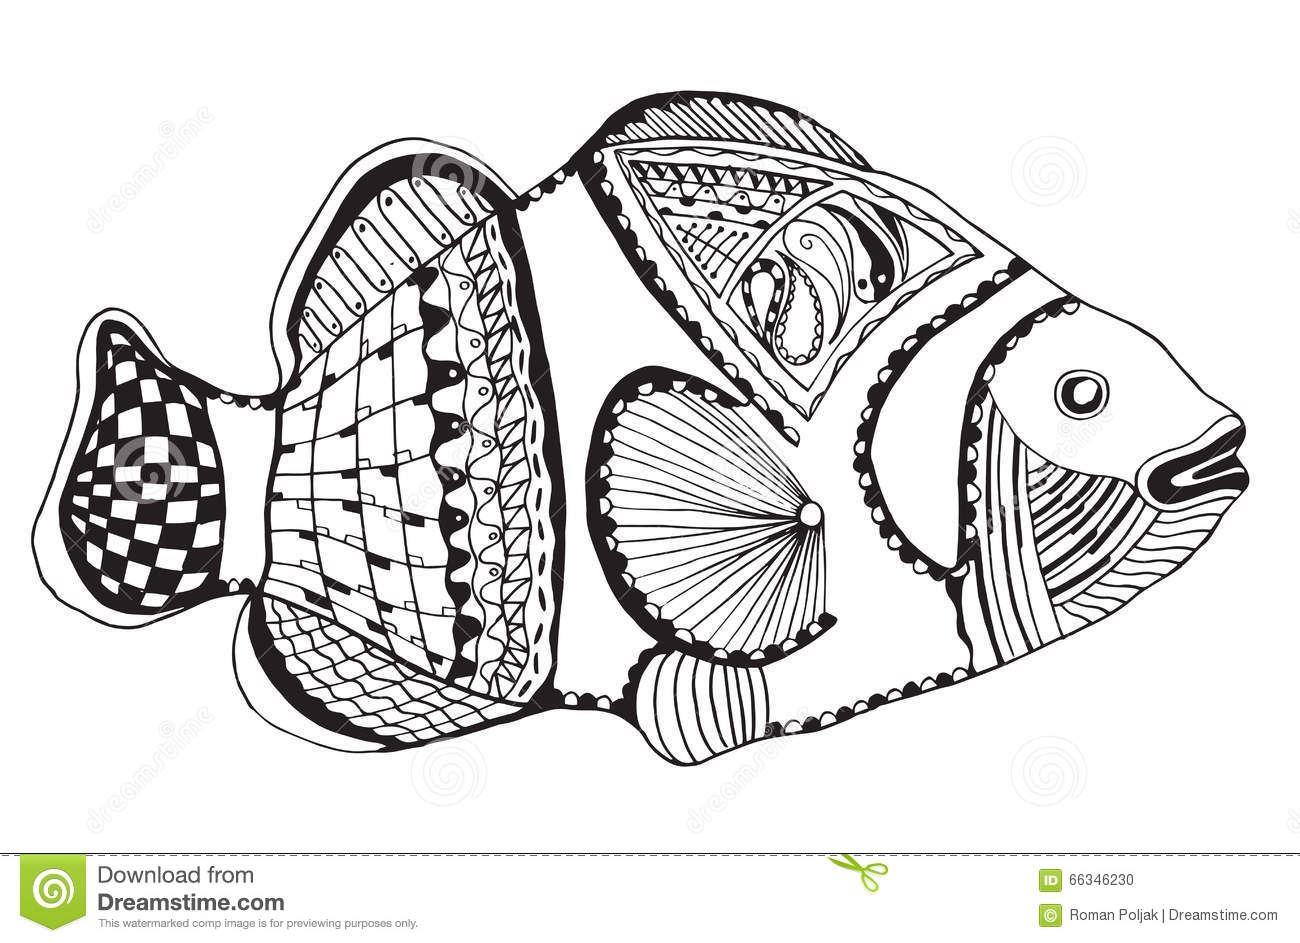 clownfish stock illustrations u2013 732 clownfish stock illustrations